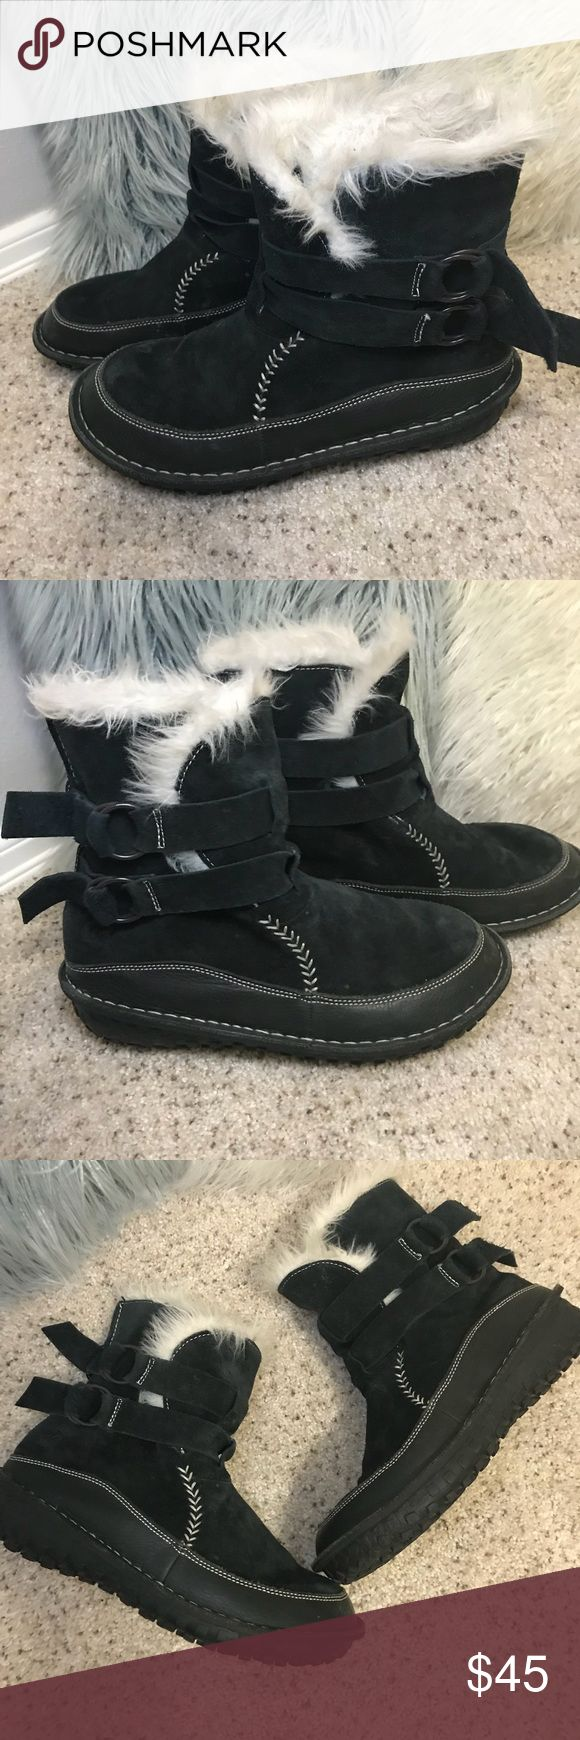 Sorel Tootega Booties Cozy and comfy. Sorel Black Suede,Fur Lined, Winter, Waterproof, Thinsulate Boots. Slip-on style with adjustable buckles. Sorel Shoes Winter & Rain Boots